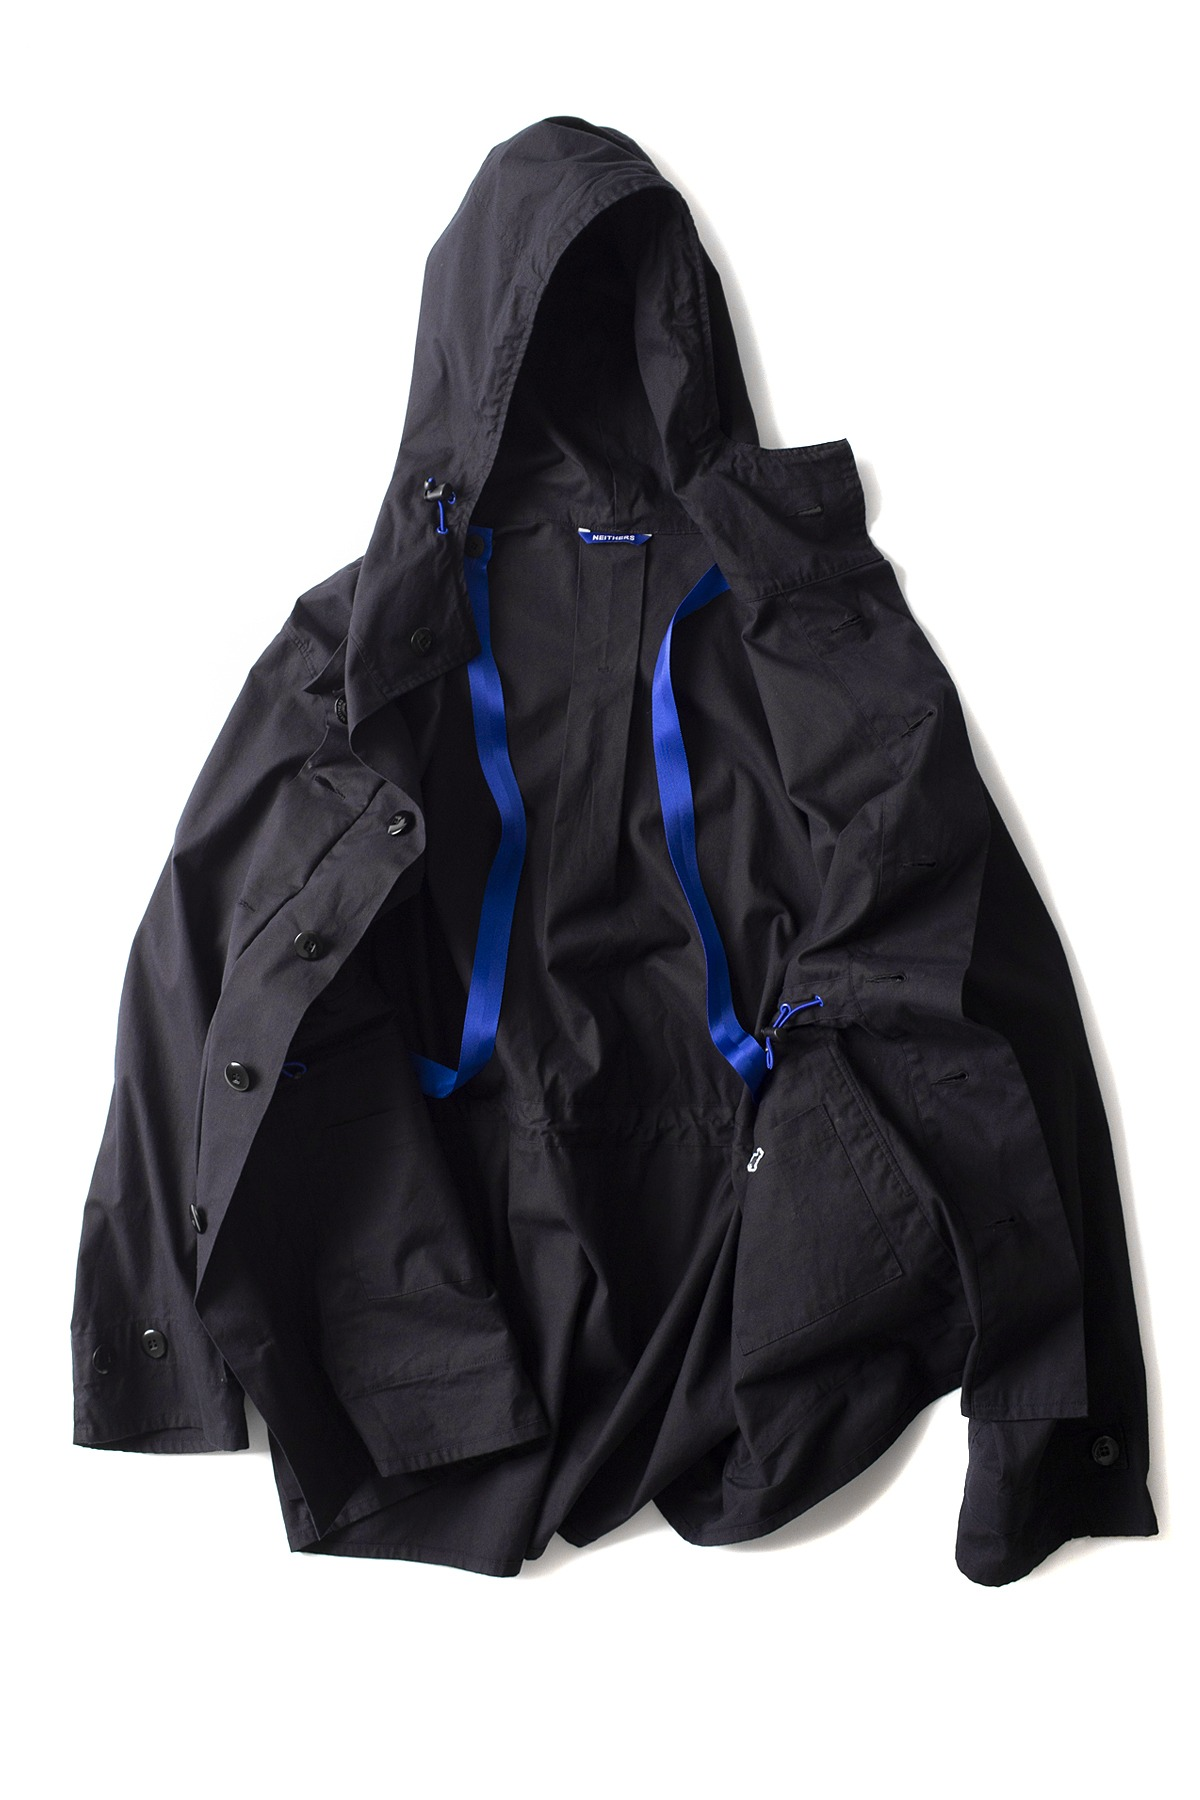 NEITHERS : Field Parka (Black)